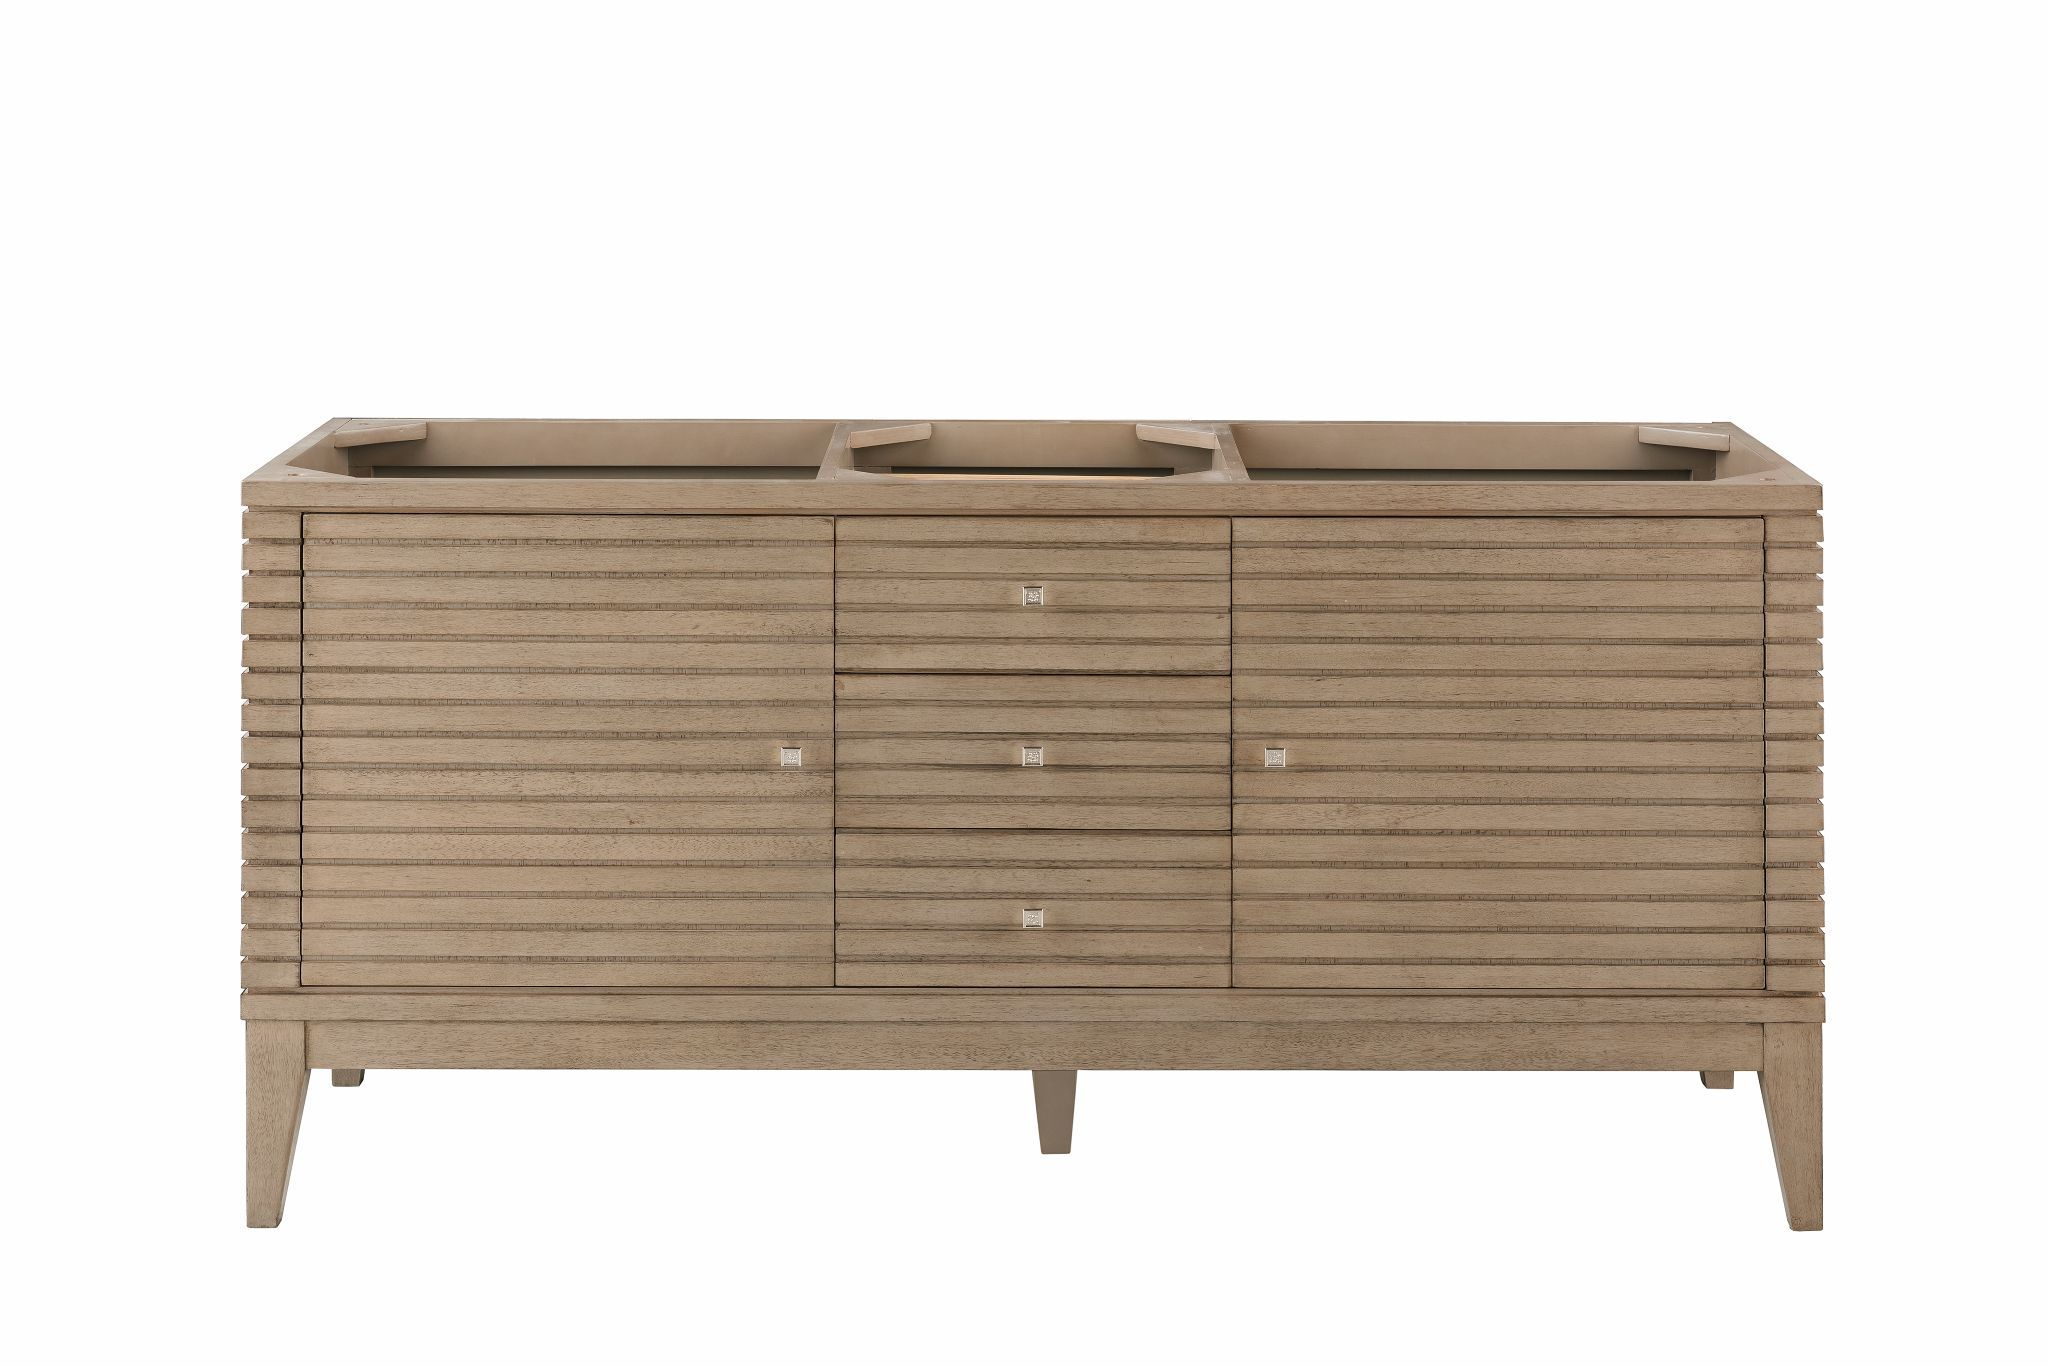 "Linear 59"" Double Bathroom Vanity, White Washed Walnut Double bathroom Vanity James Martin Vanities"